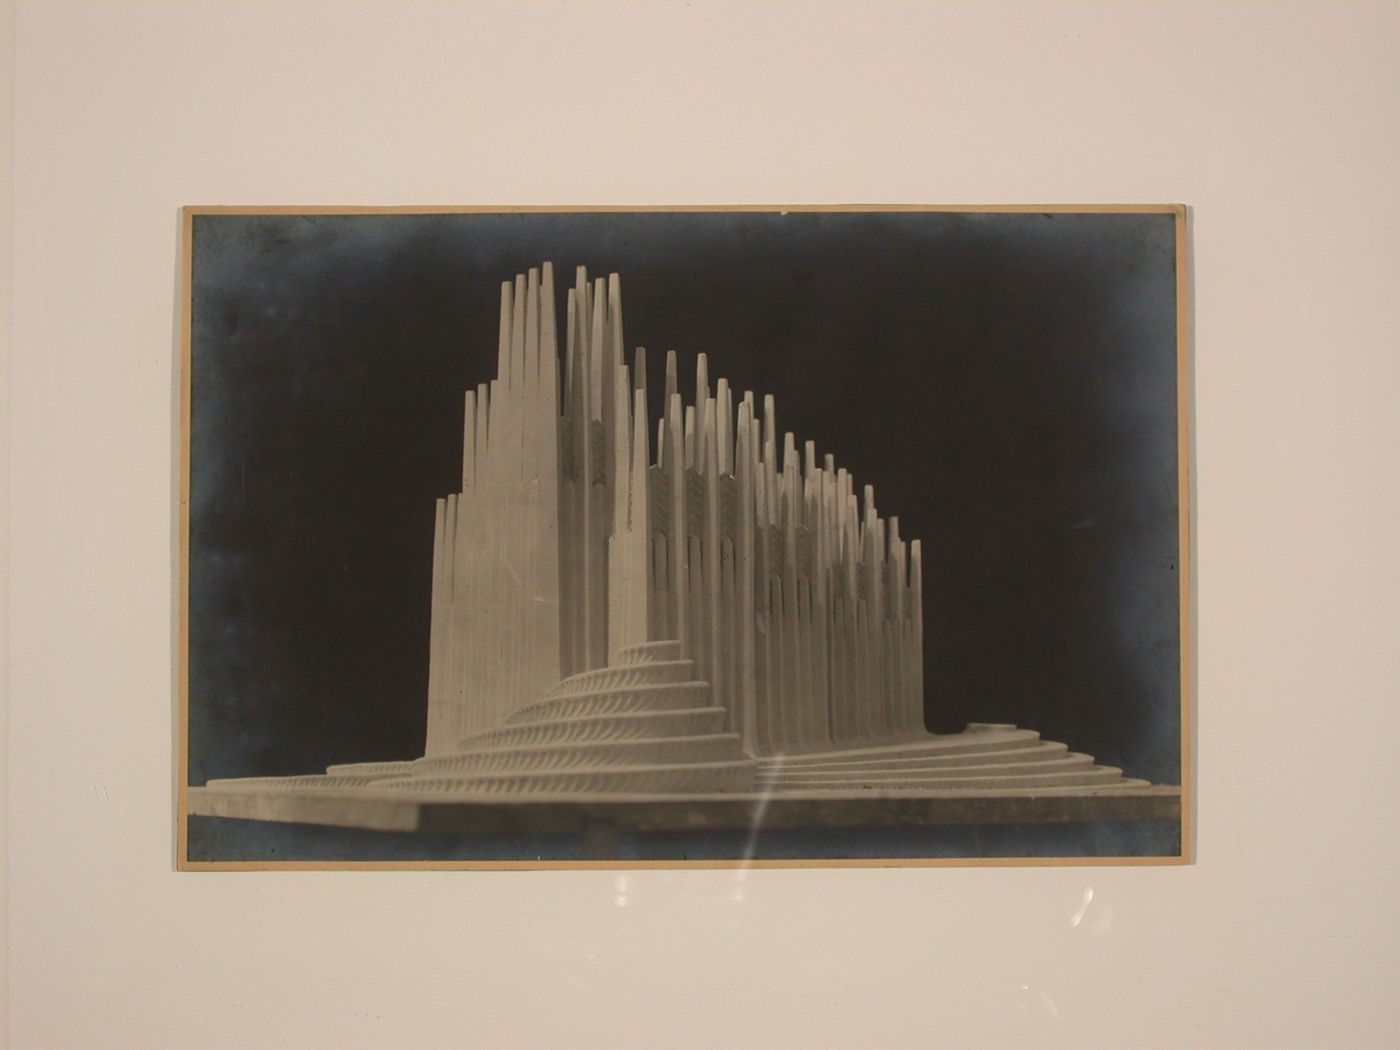 Photograph of a model for the Concert Hall project by Hans Luckhardt